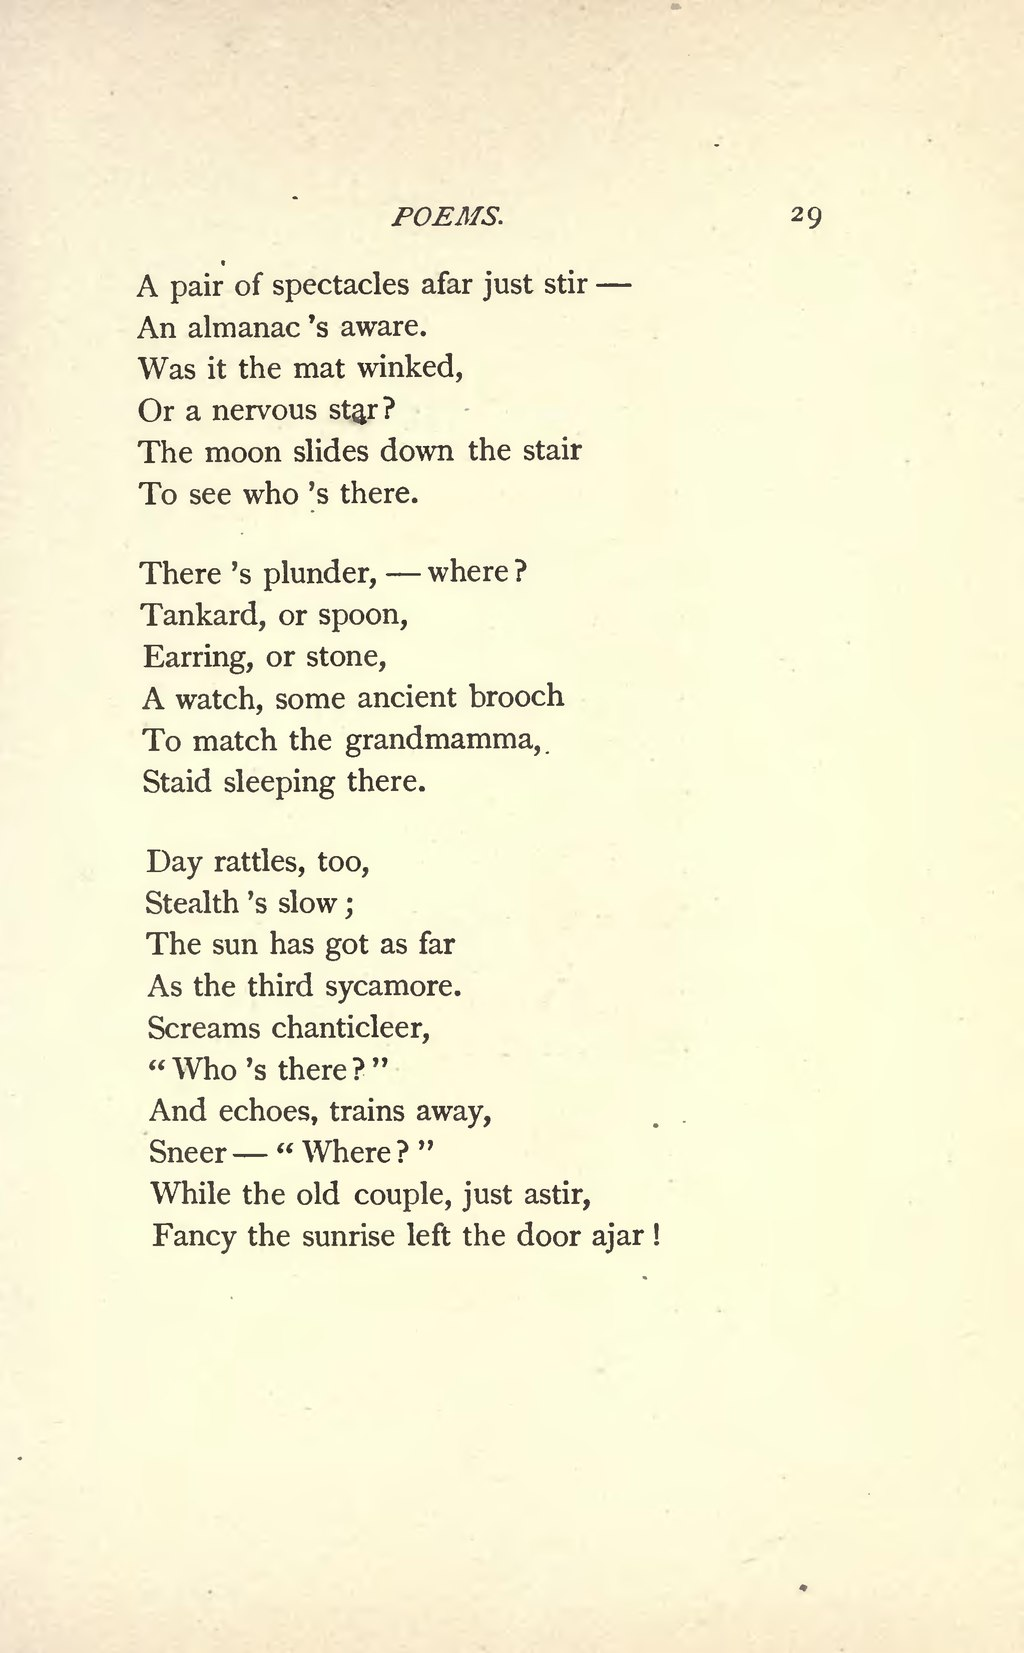 Page Emily Dickinson Poems 1890 Djvu 37 Wikisource